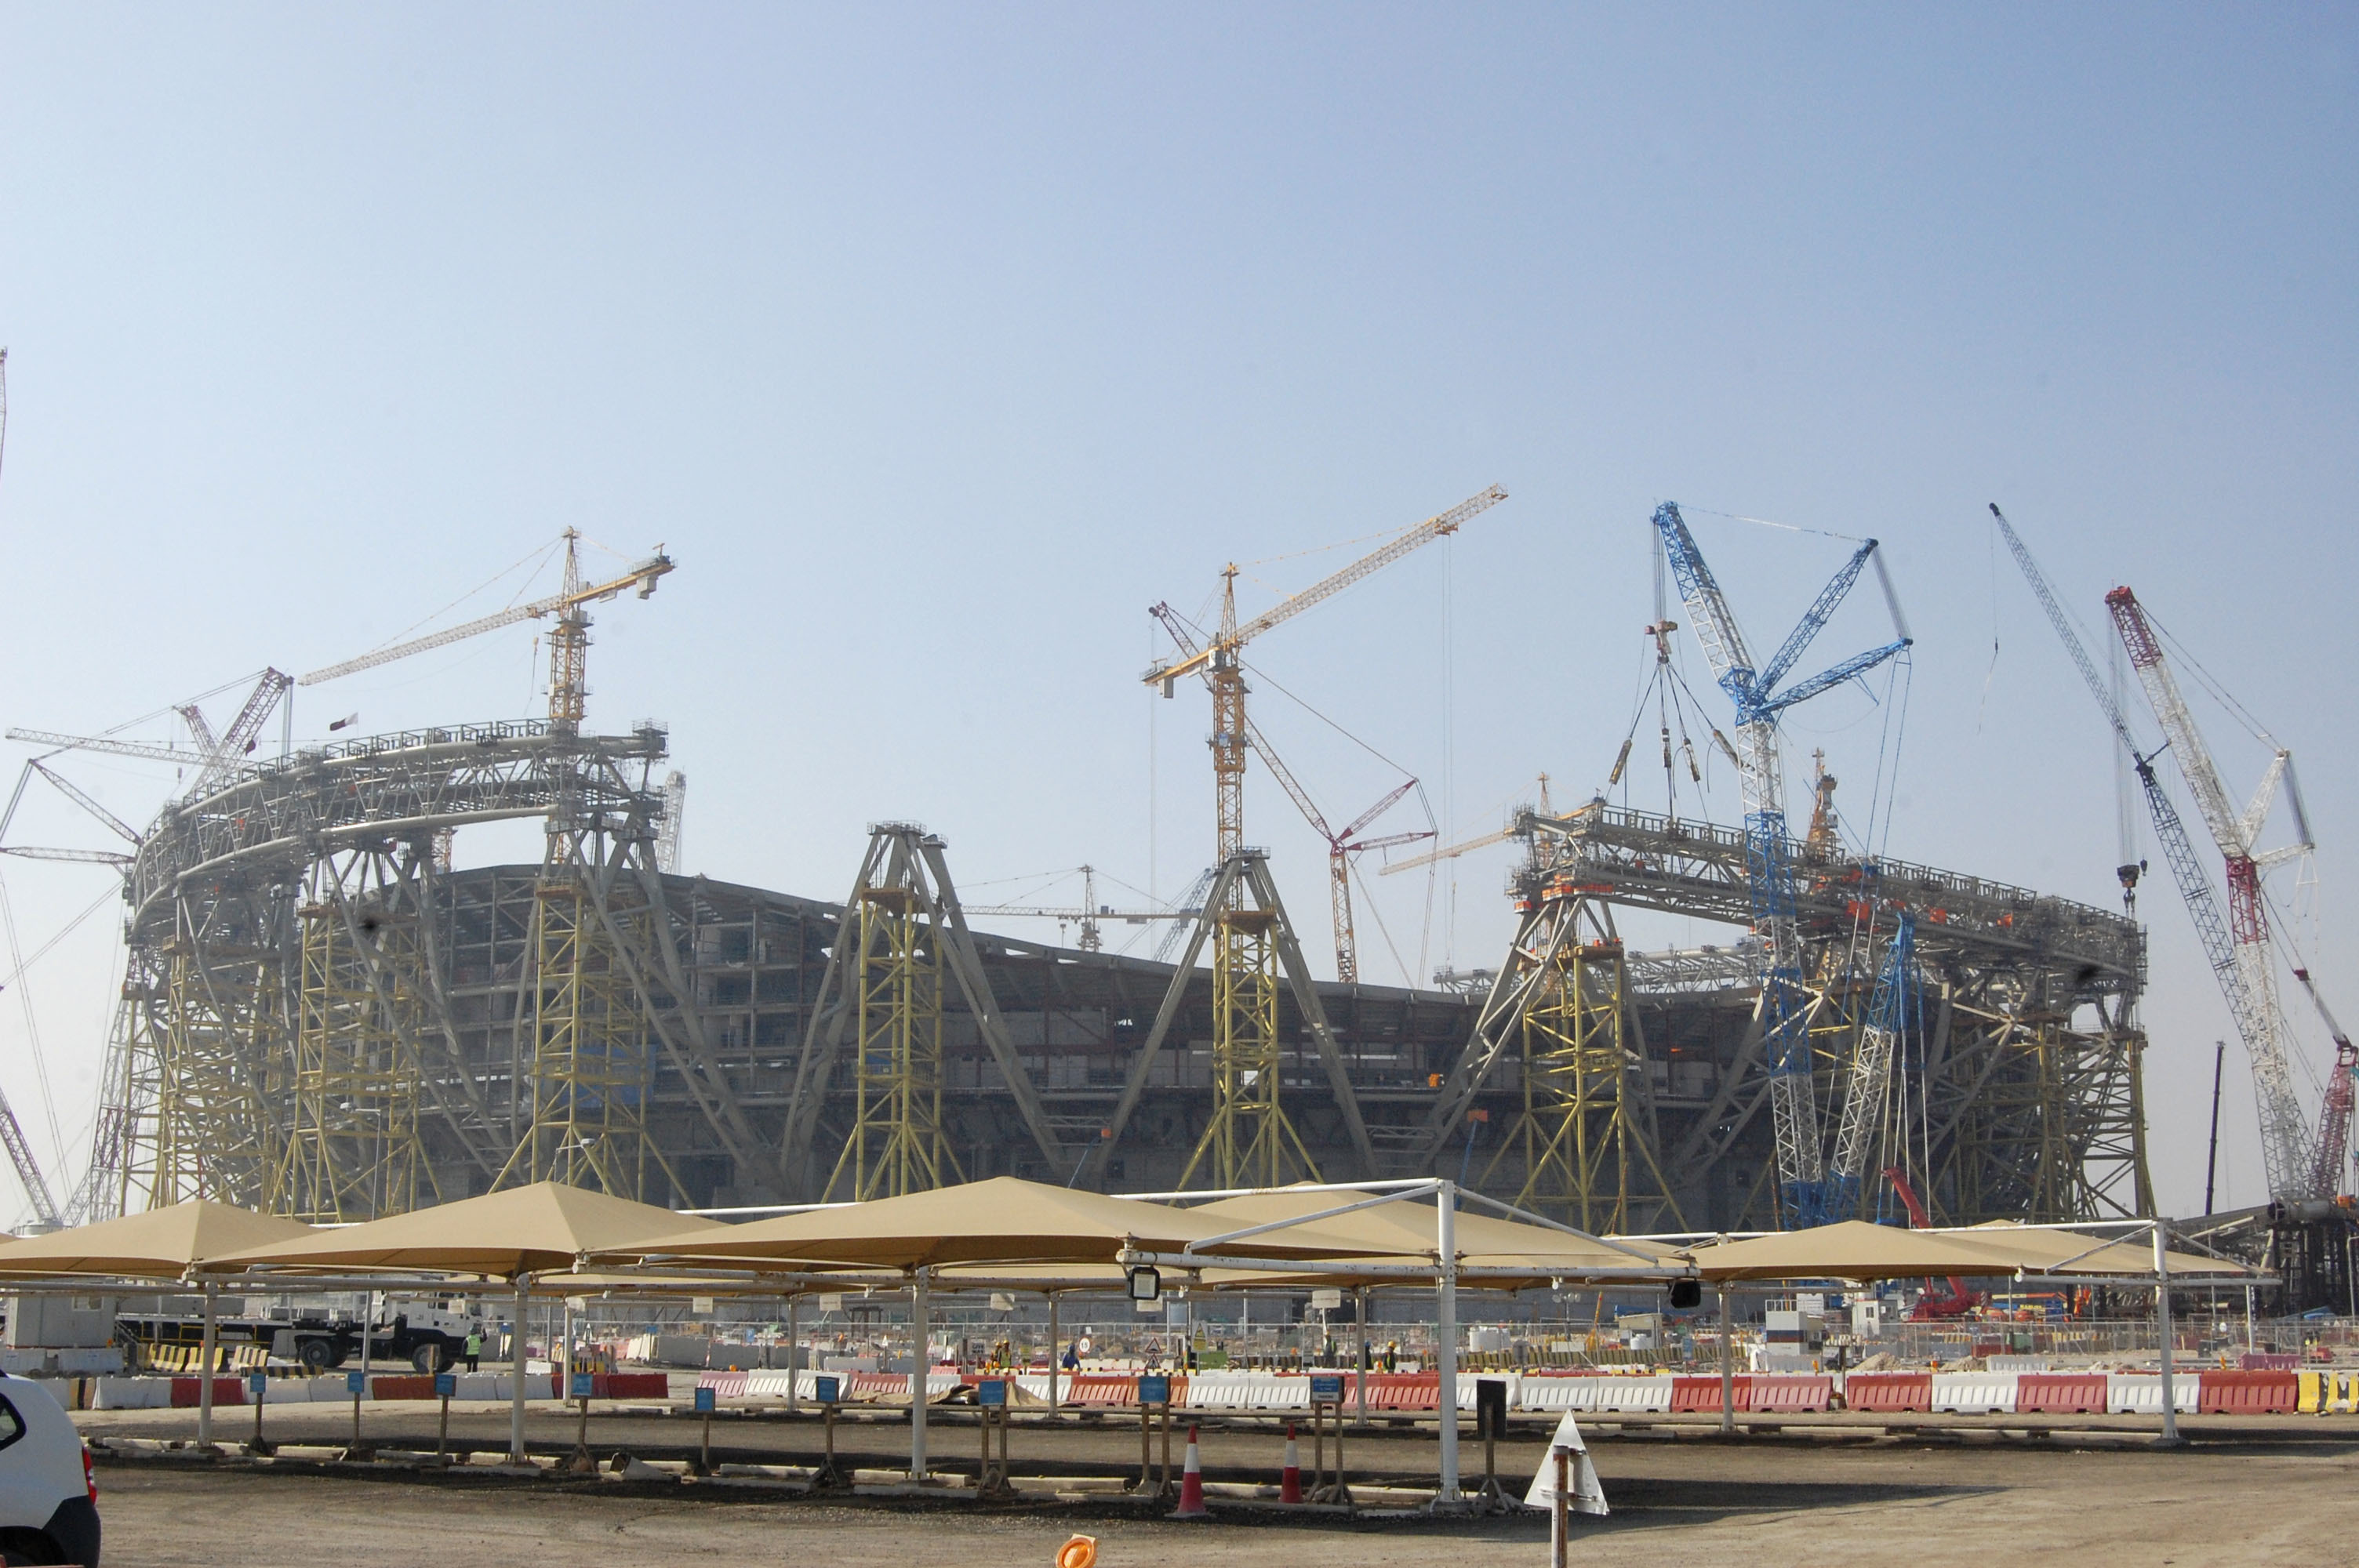 Photo taken Dec. 20, 2019, in Doha, shows Lusail Stadium -- which is scheduled to host the opening and final matches of the 2022 FIFA World Cup -- under construction. (Kyodo via AP Images) ==Kyodo